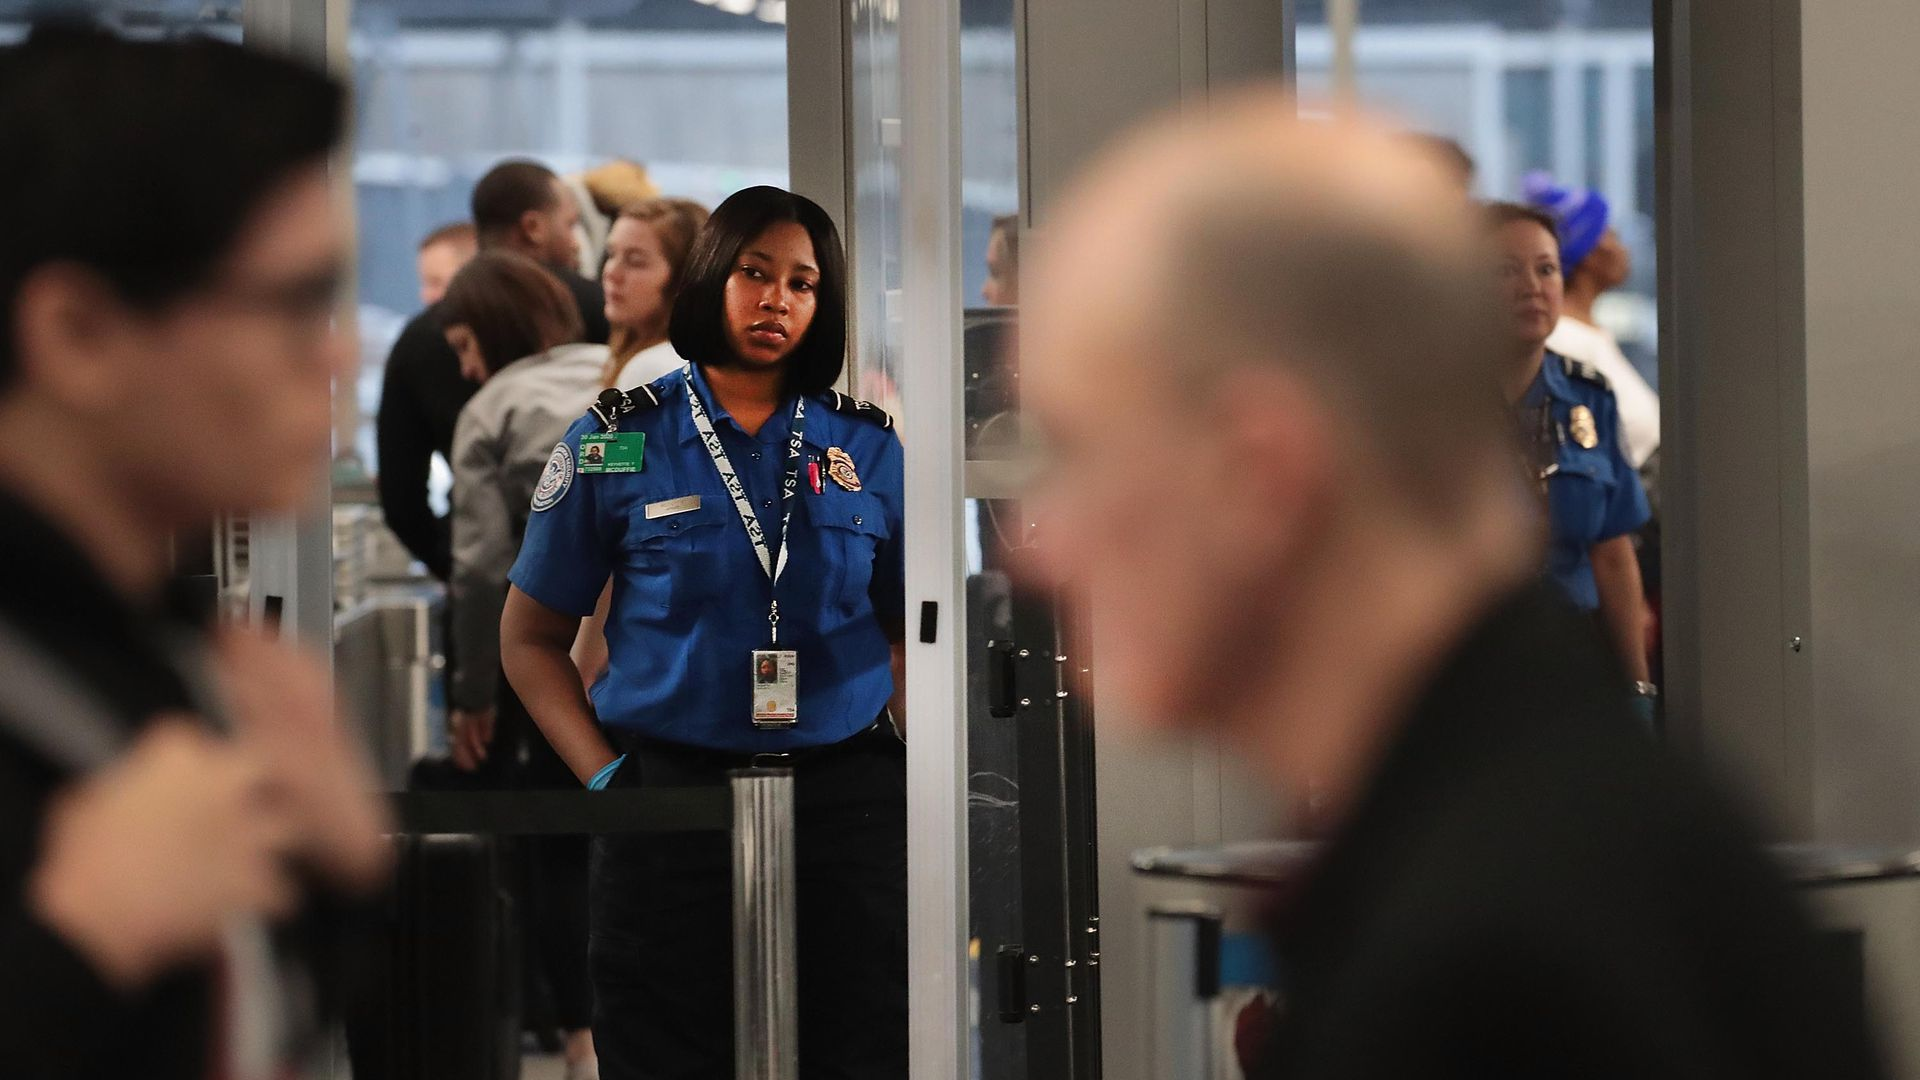 A Transportation Security Administration (TSA) worker screens passengers and airport employees at O'Hare International Airport  in Chicago, Illinois.